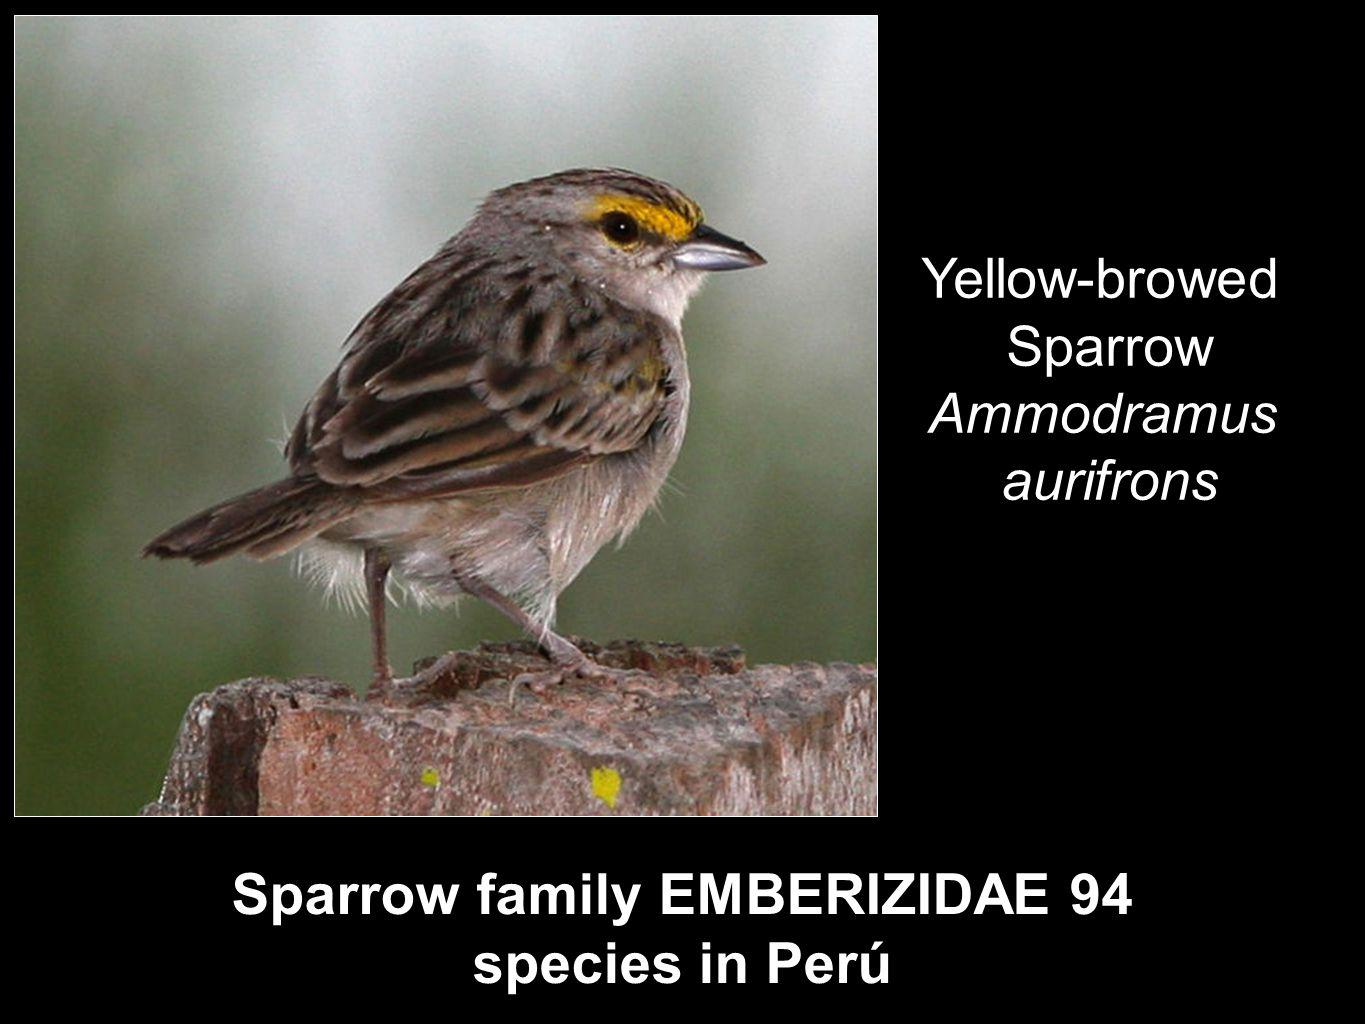 Sparrow family EMBERIZIDAE 94 species in Perú Yellow-browed Sparrow Ammodramus aurifrons